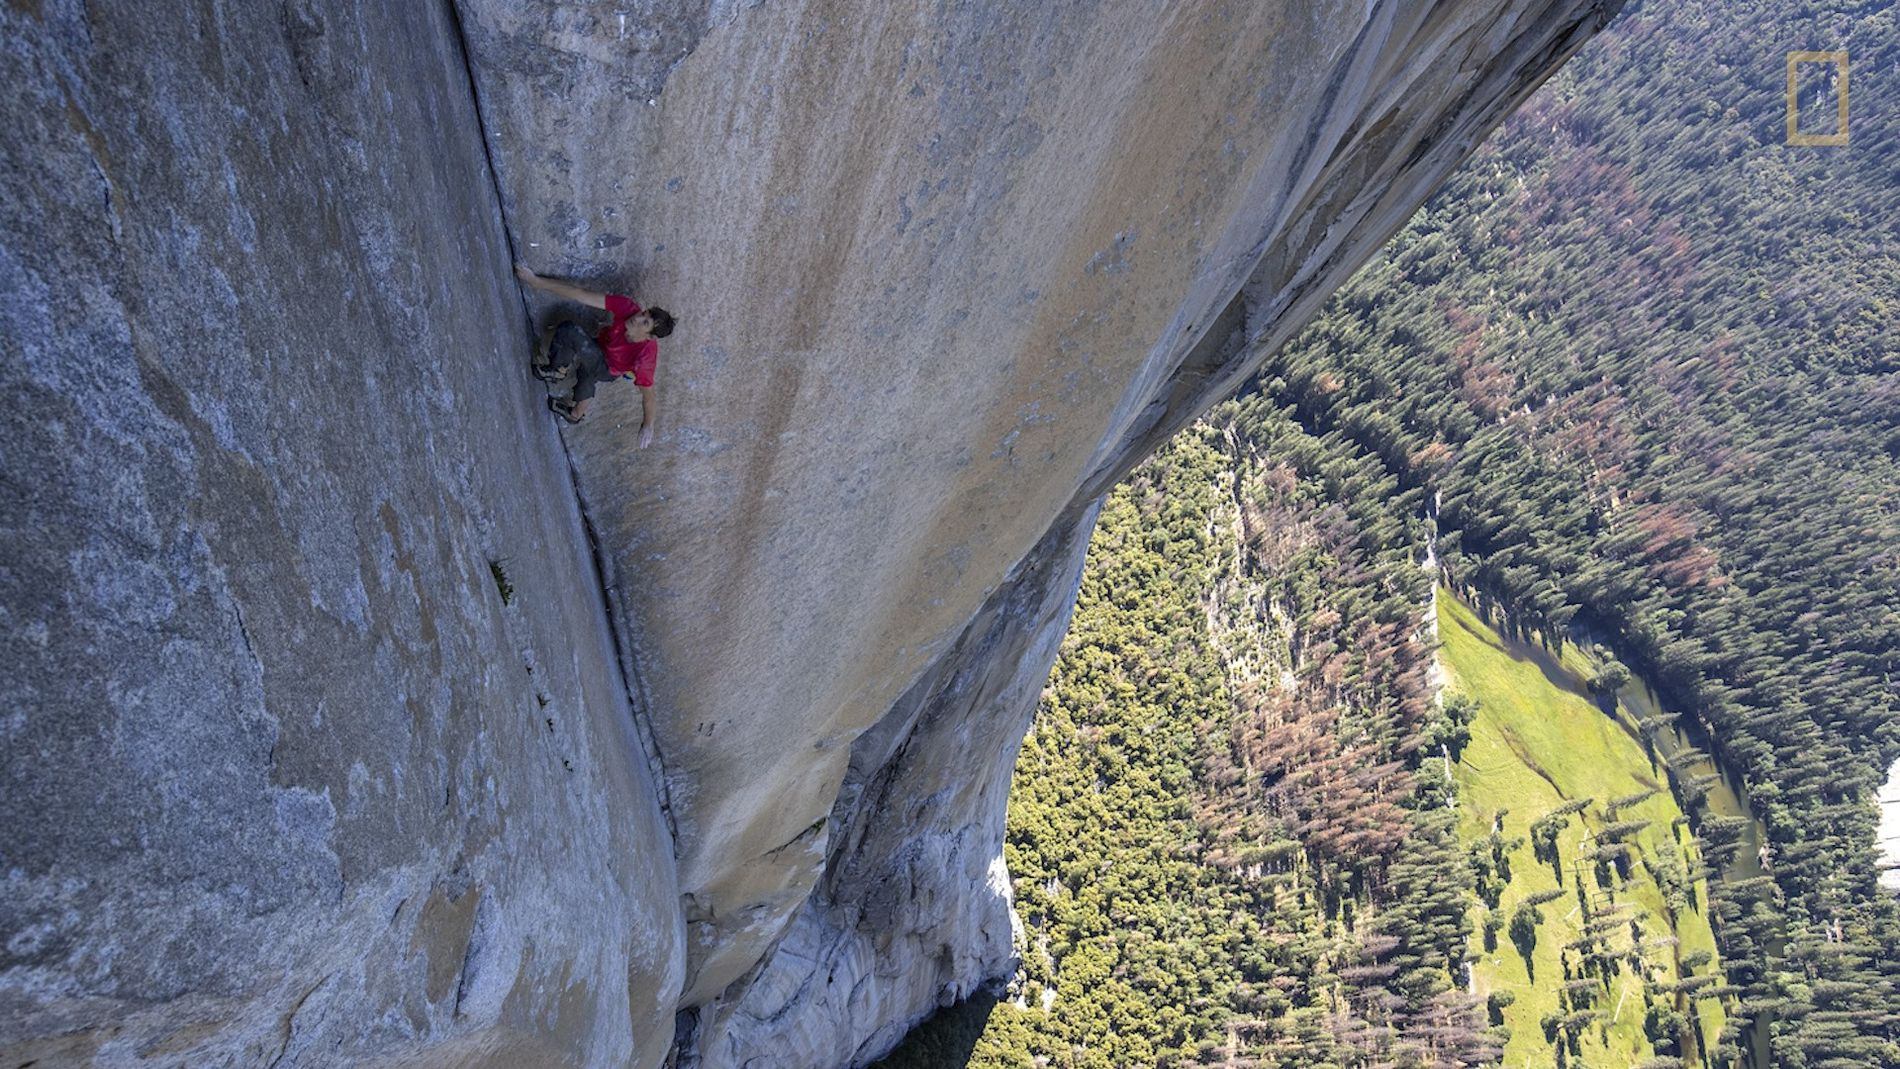 Exclusive: A Conversation with star climber Alex Honnold and the Co-Directors of 'Free Solo'